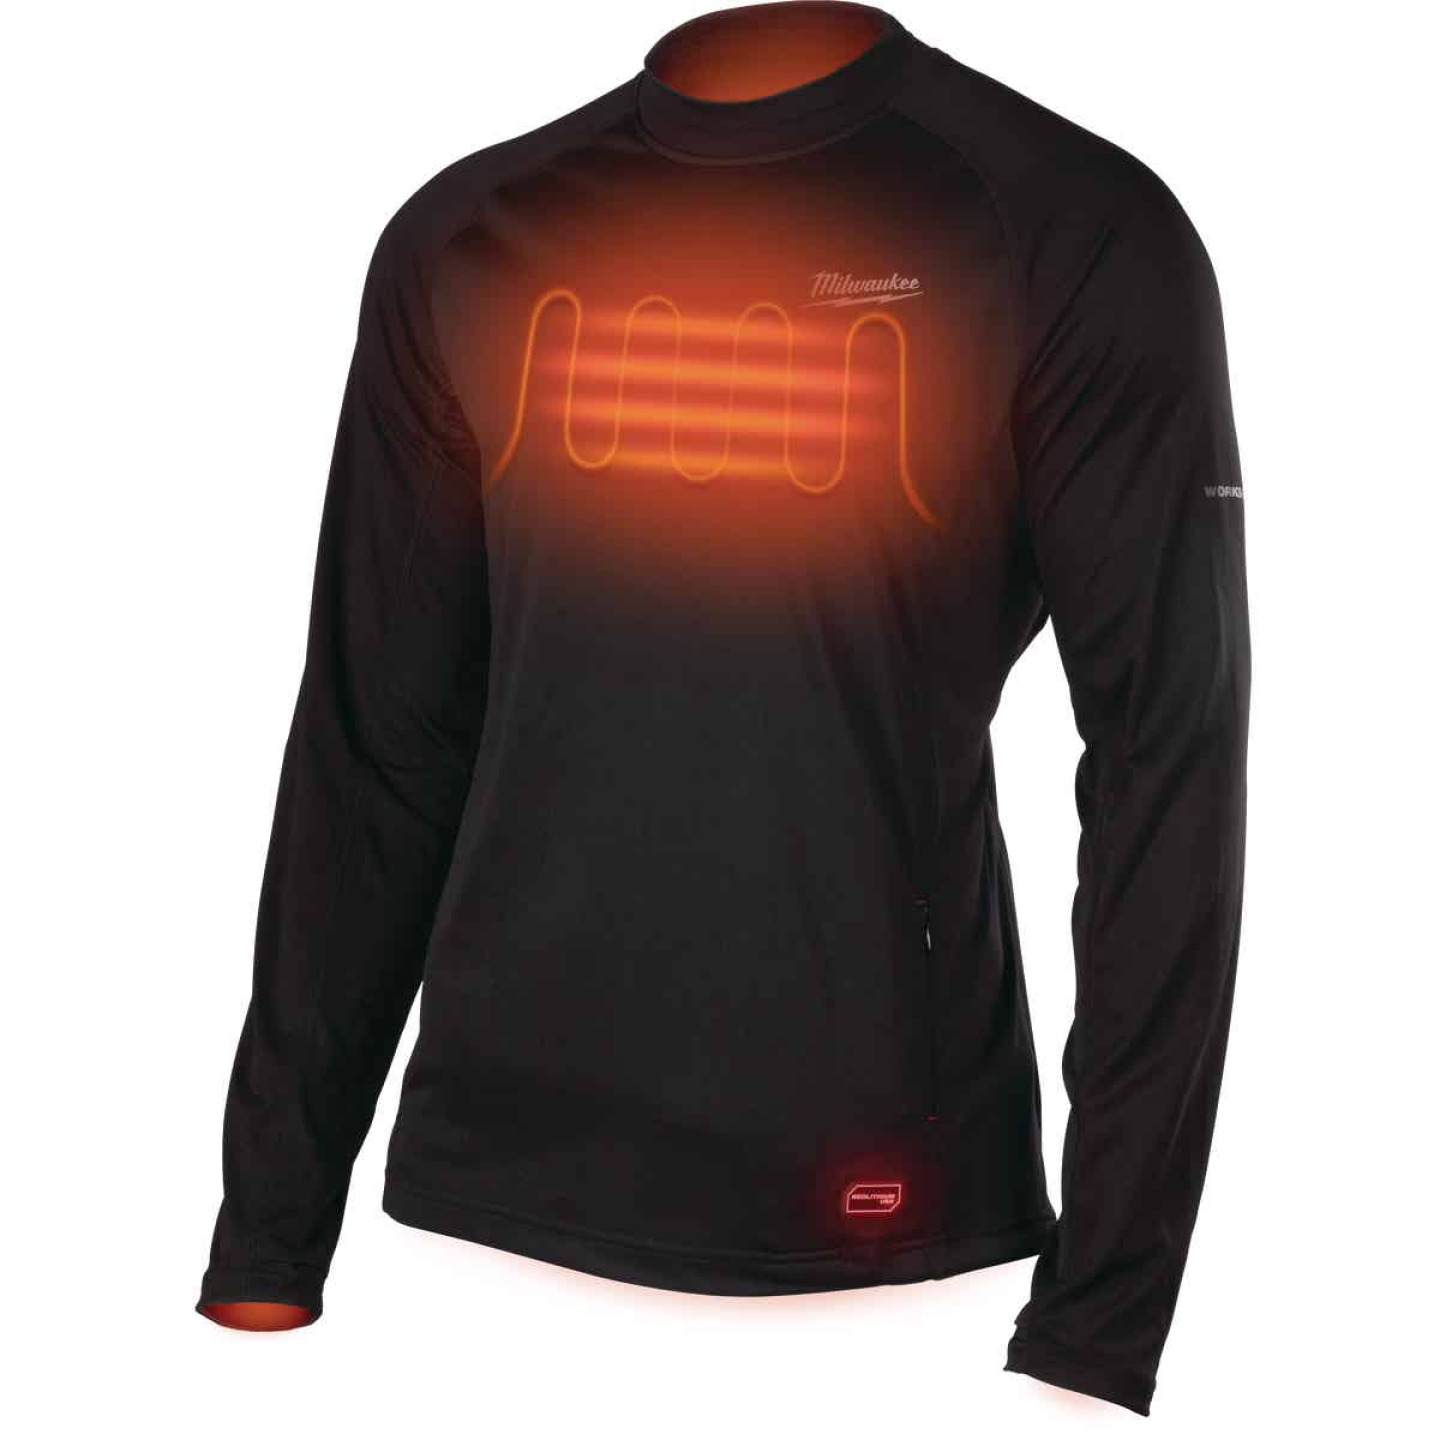 Milwaukee Workskin Medium Black Heated Midweight Base Layer Shirt Image 8